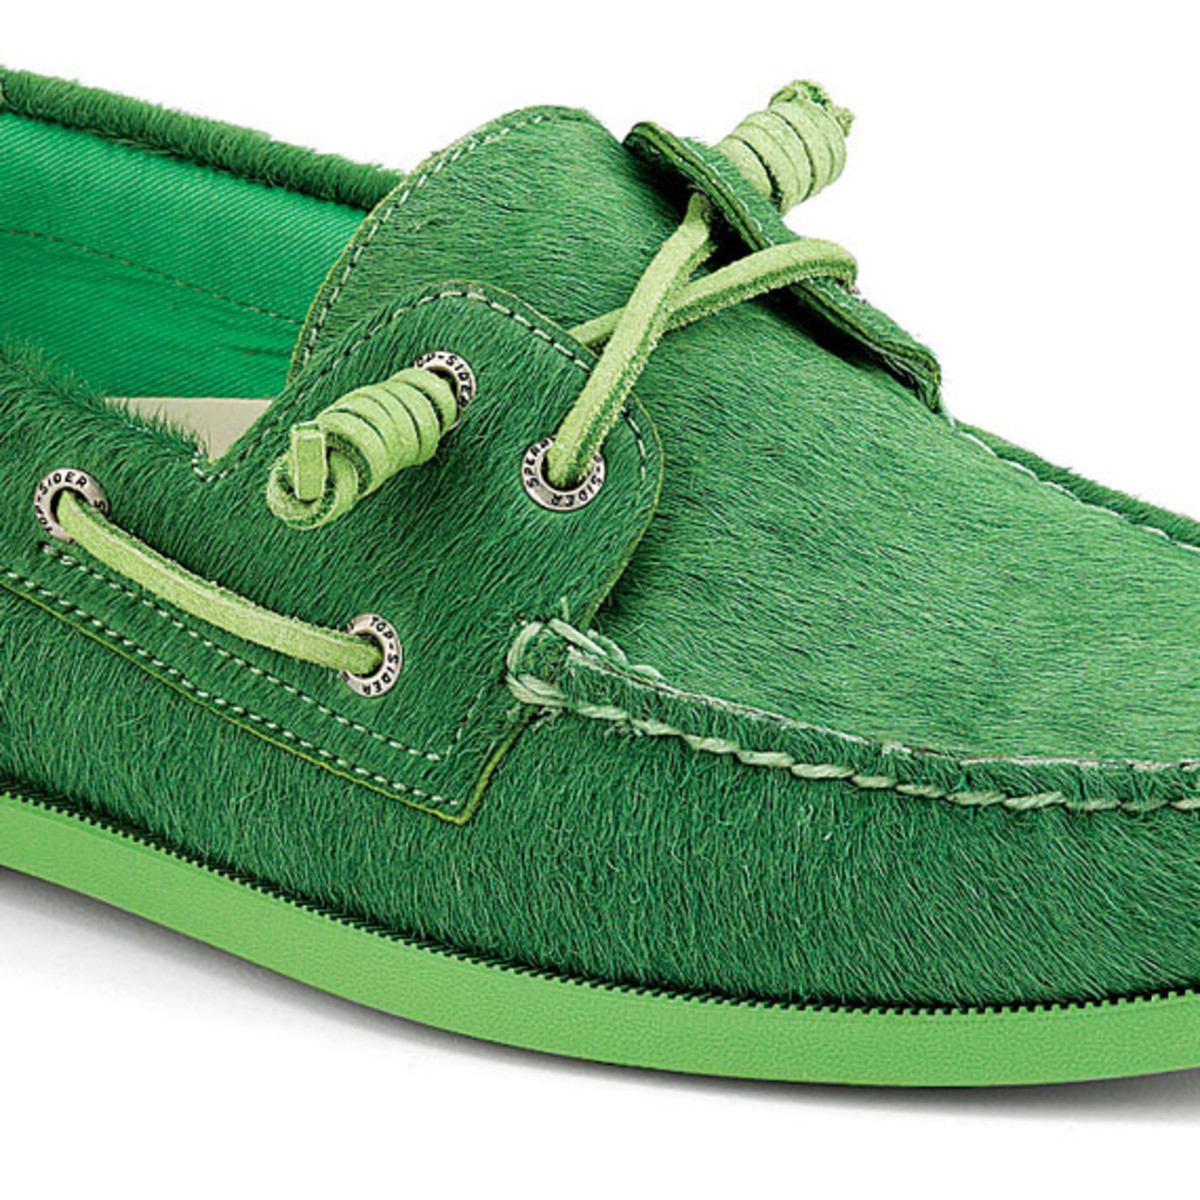 jeffrey-x-sperry-top-sider-authentic-original-barrel-lace-boat-shoes-09